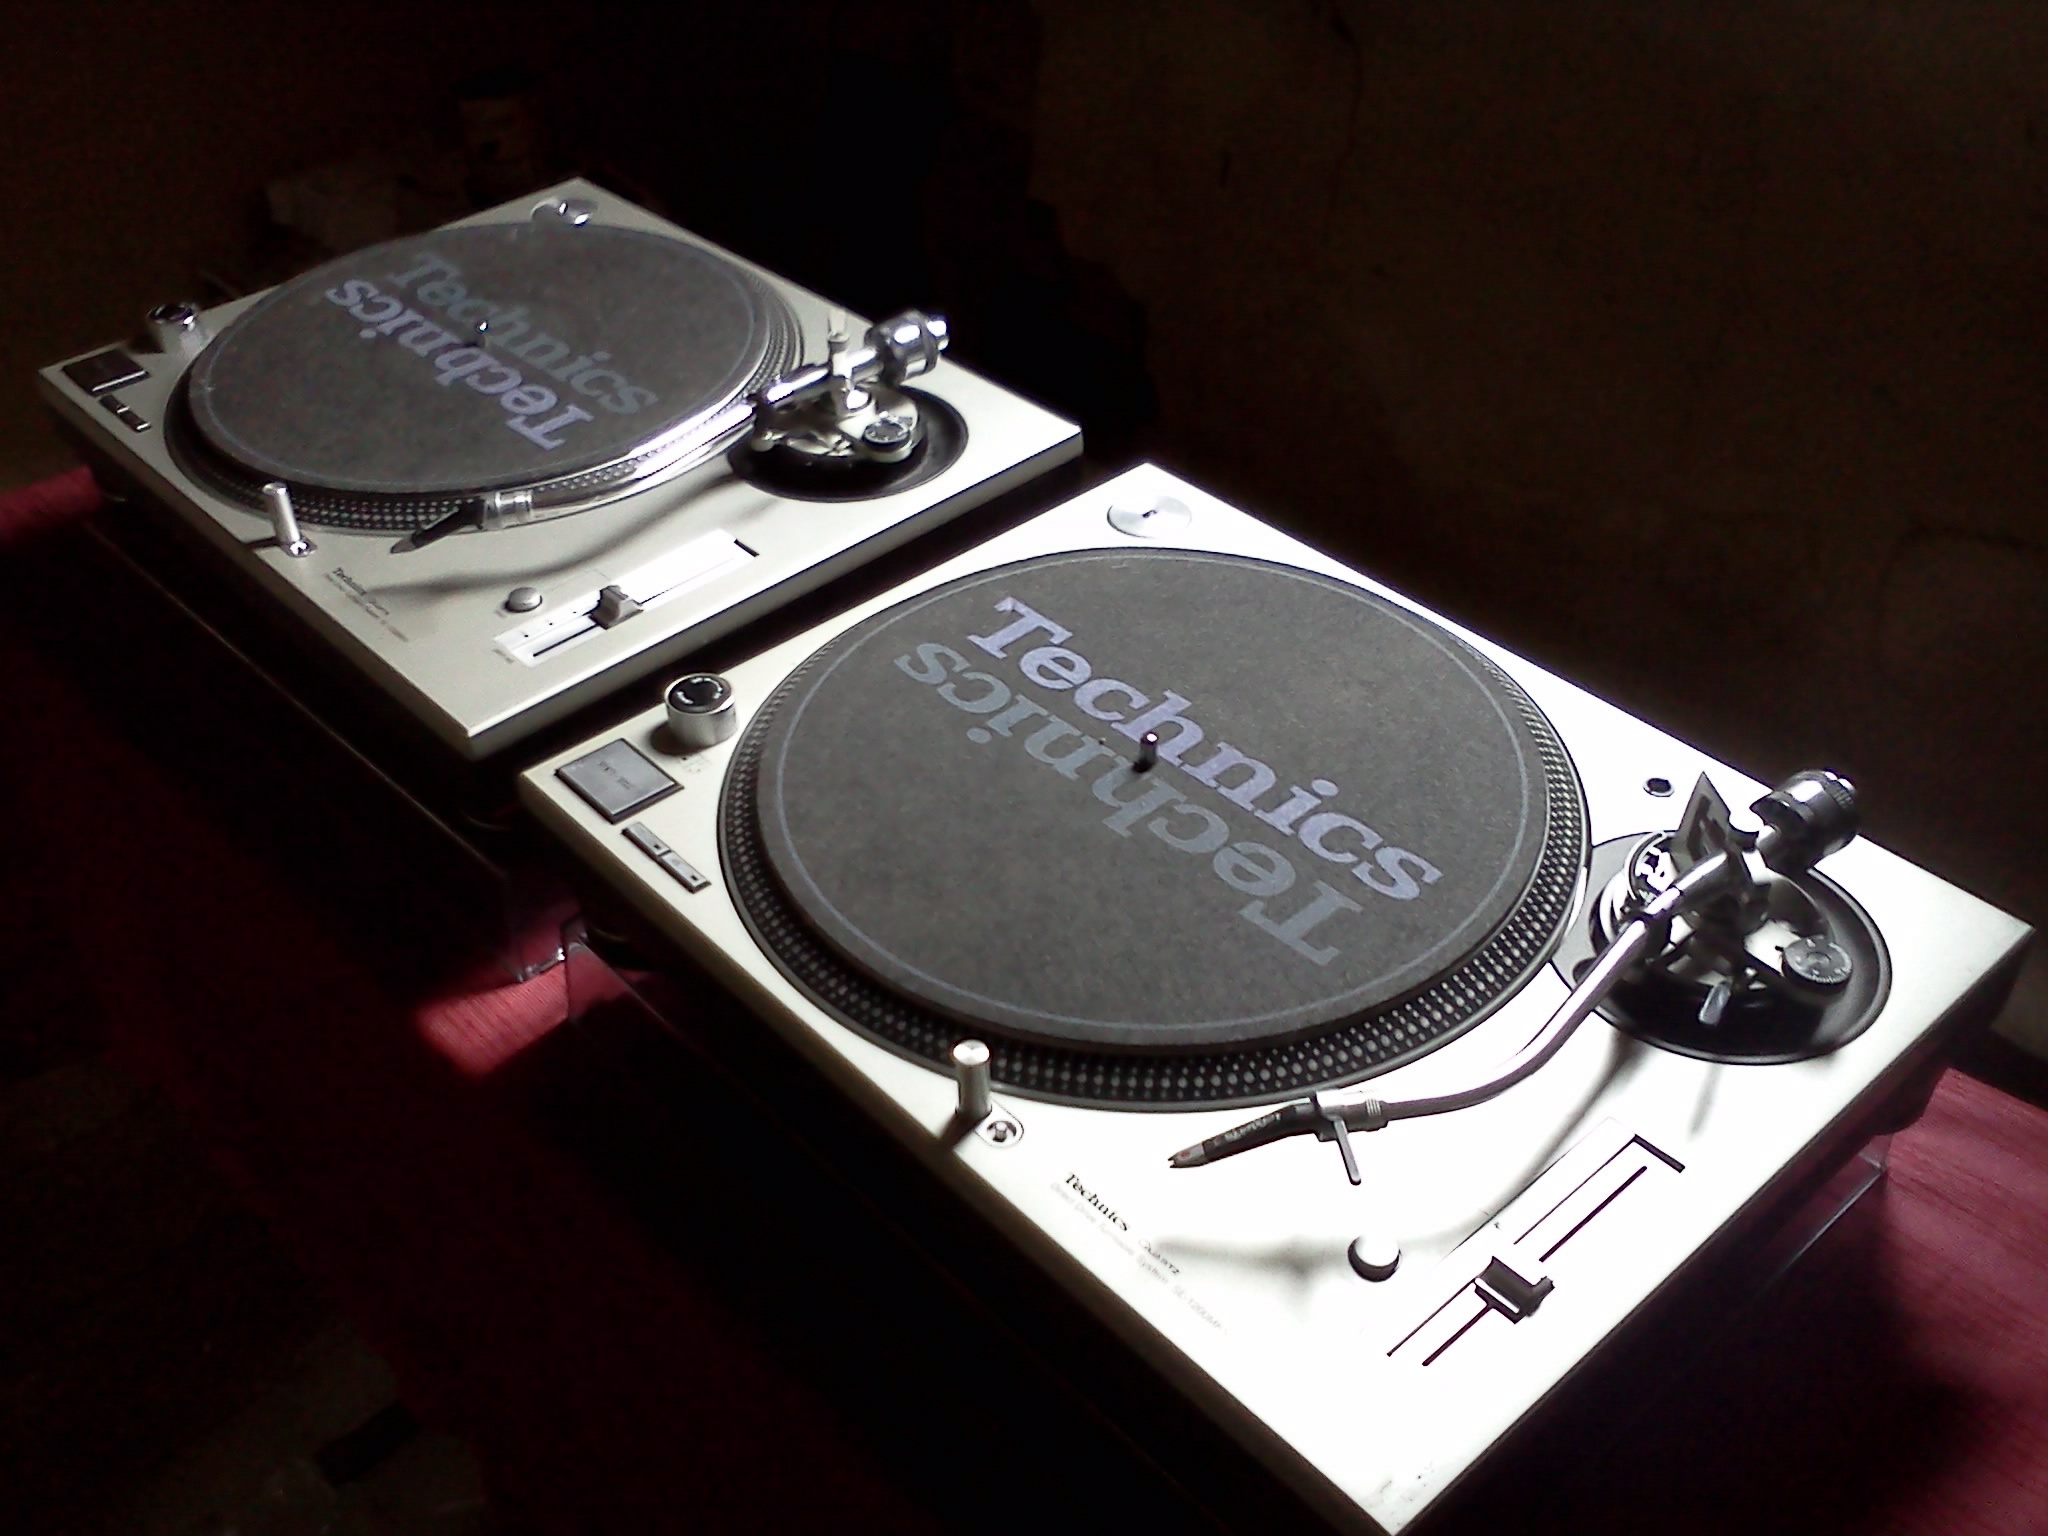 How to Install Hinges in Your Technics SL-1200 Turntable